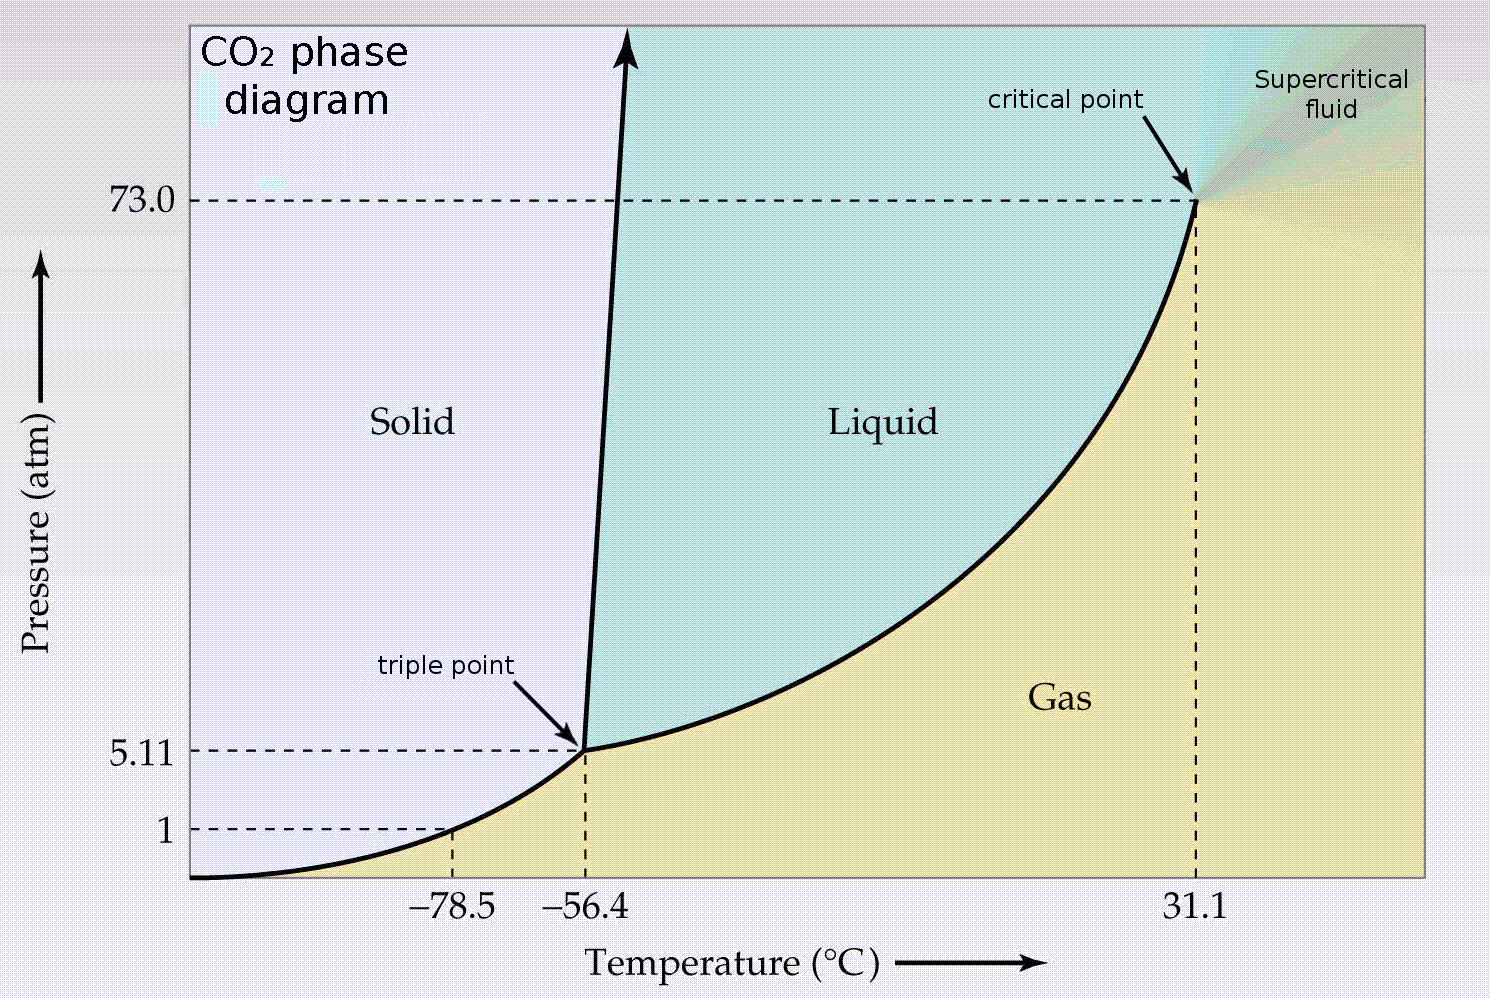 hight resolution of co2 phase diagram jpg